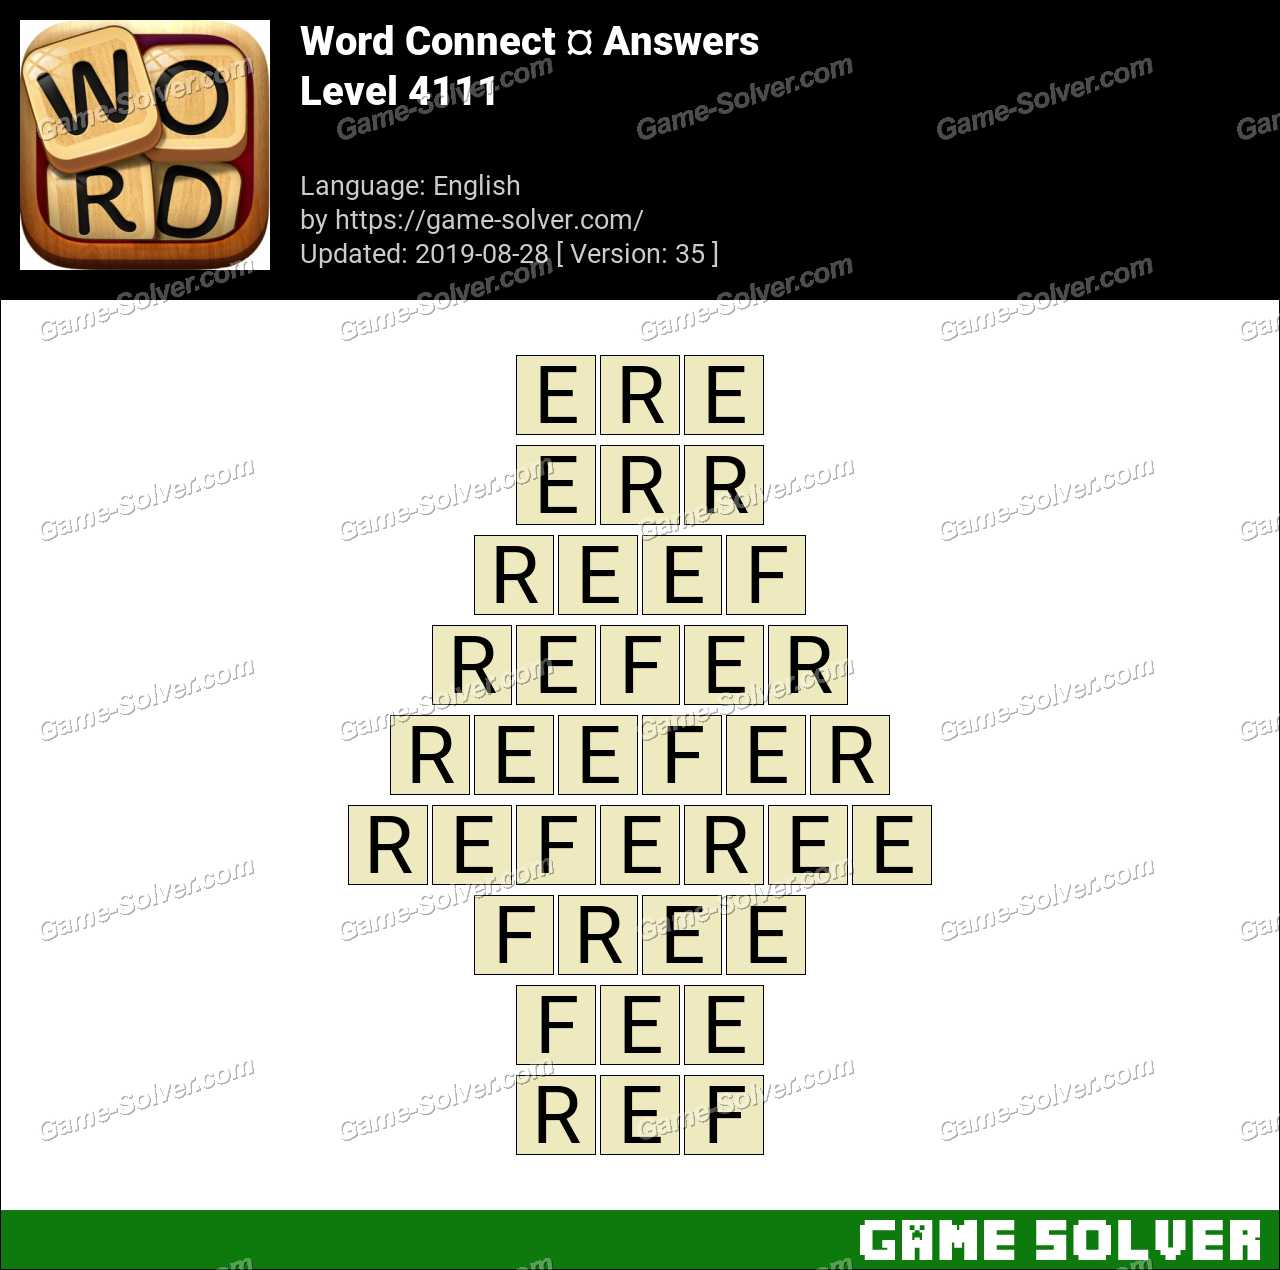 Word Connect Level 4111 Answers